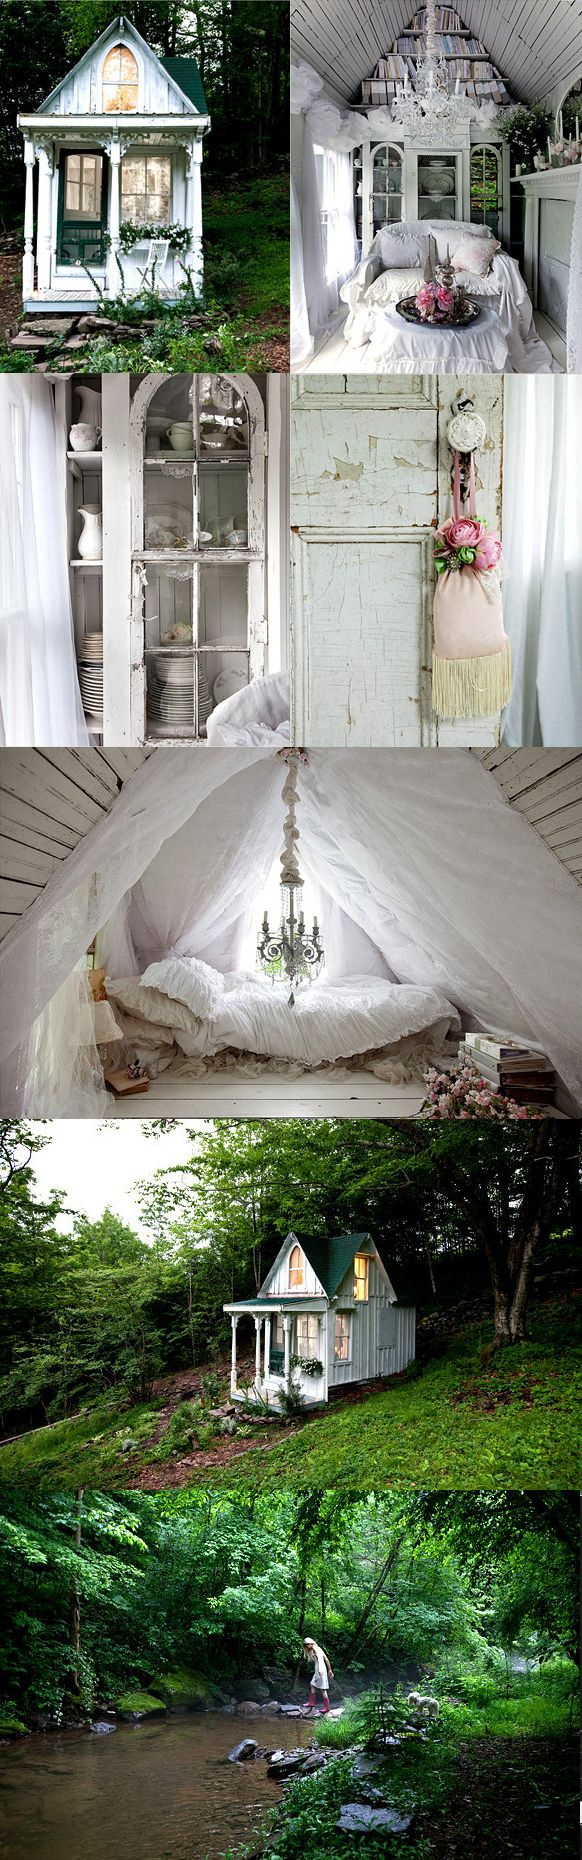 A tiny cottage, a nook, a beautiful piece of architecture with repurposed finds of refinement.